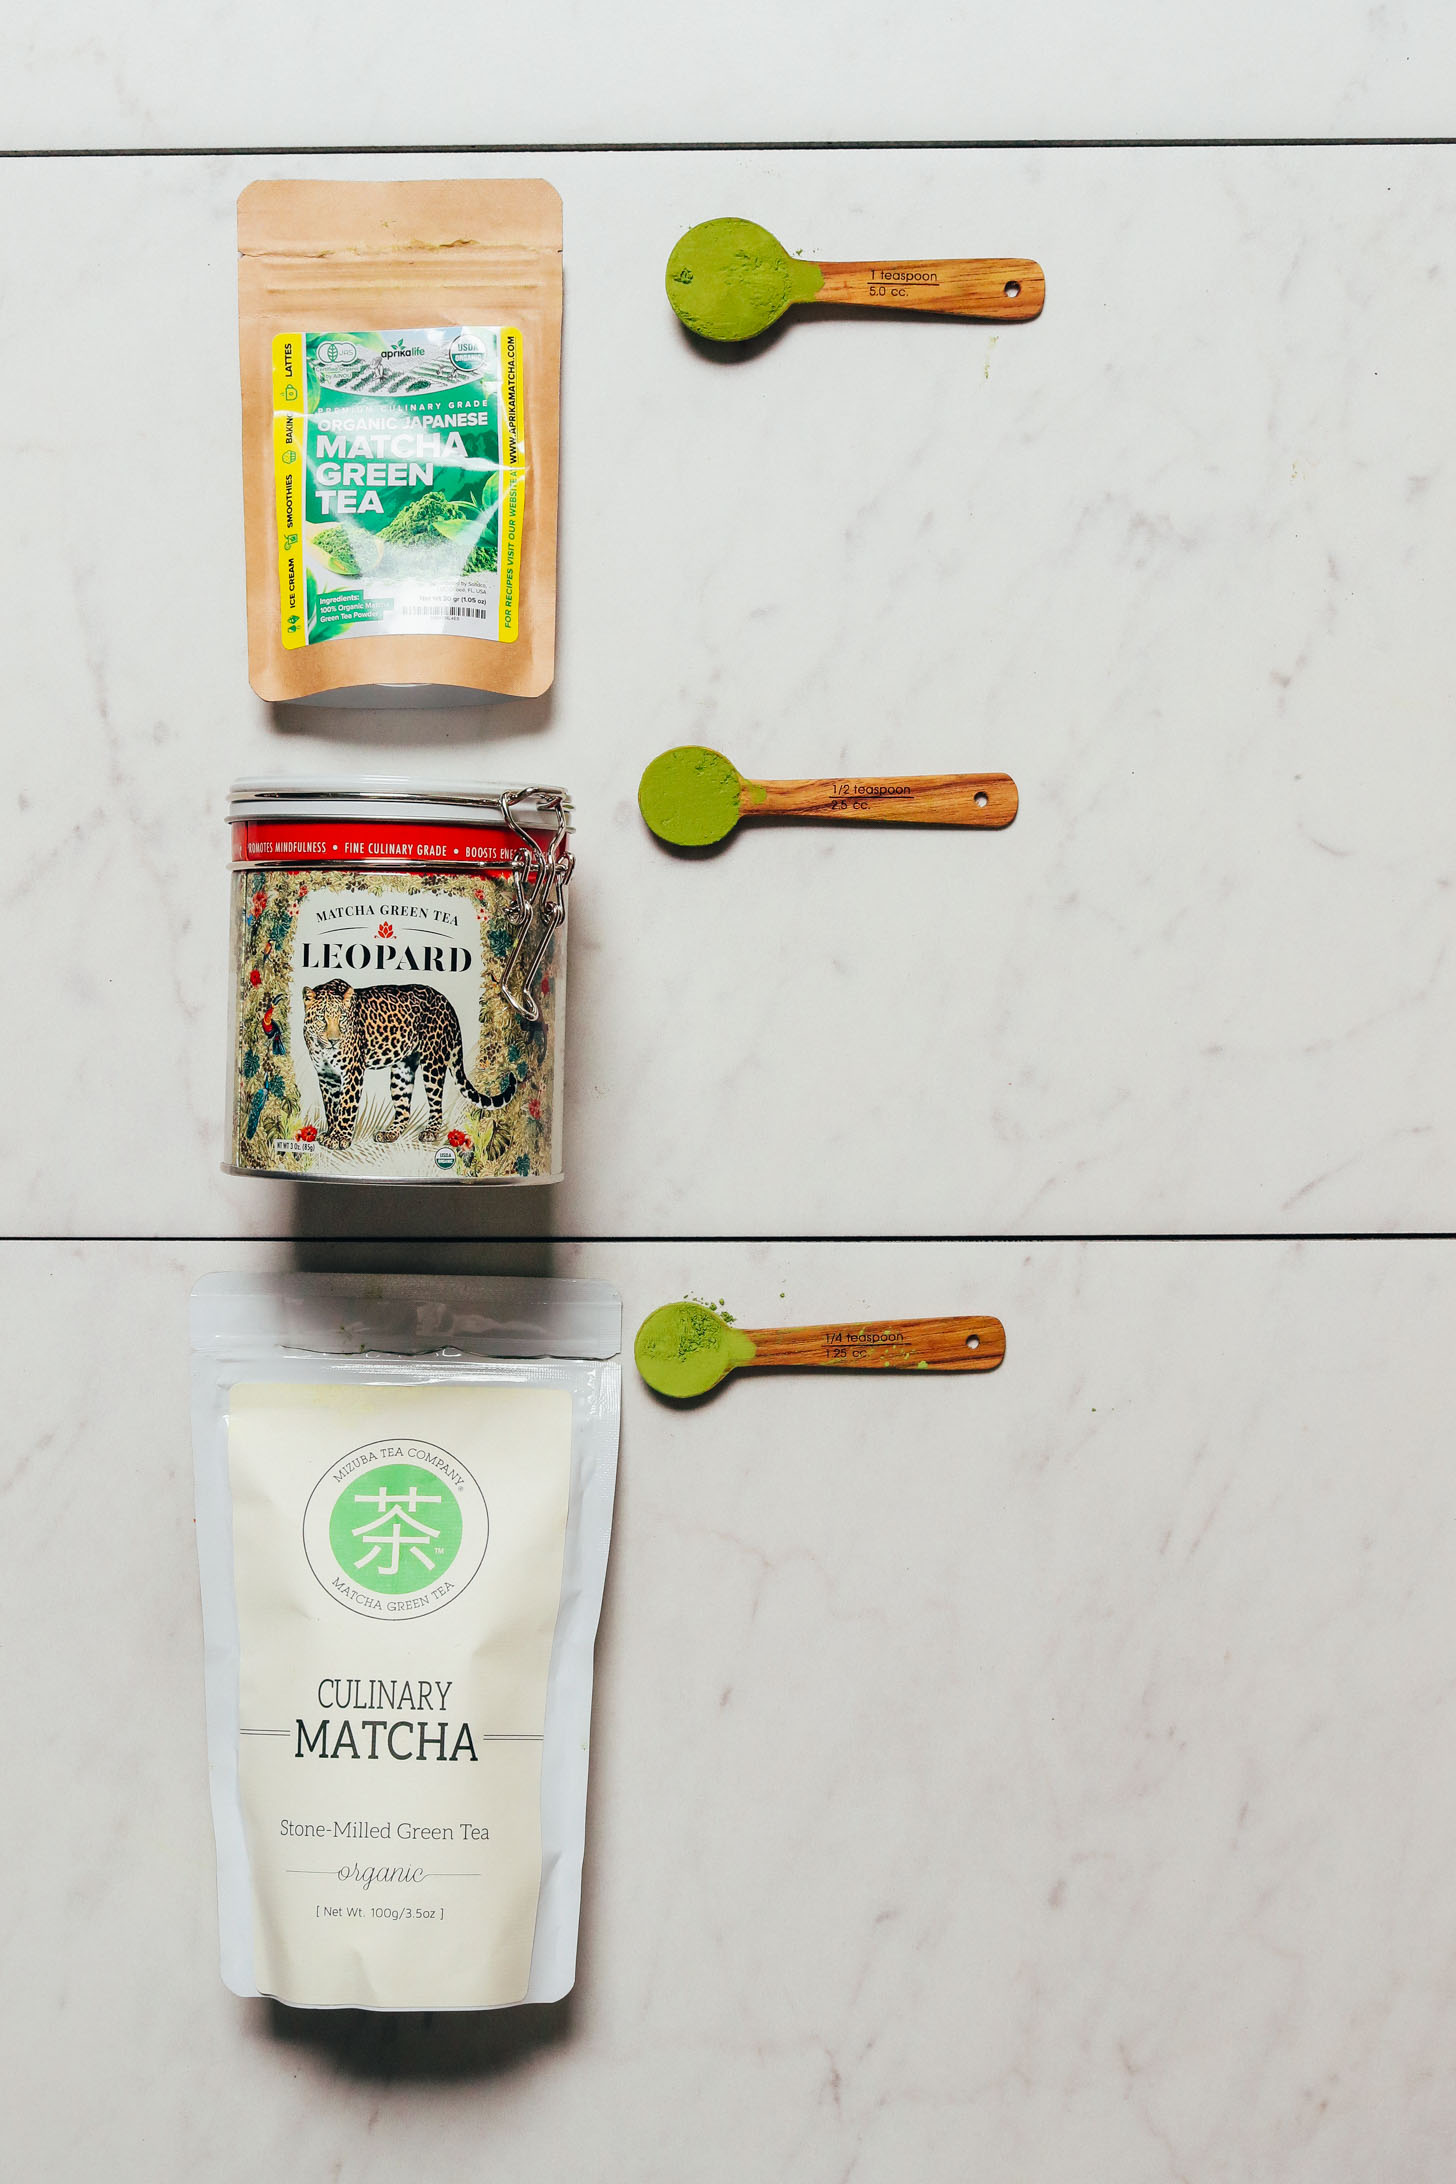 Spoonfuls and containers of our favorite brands of matcha